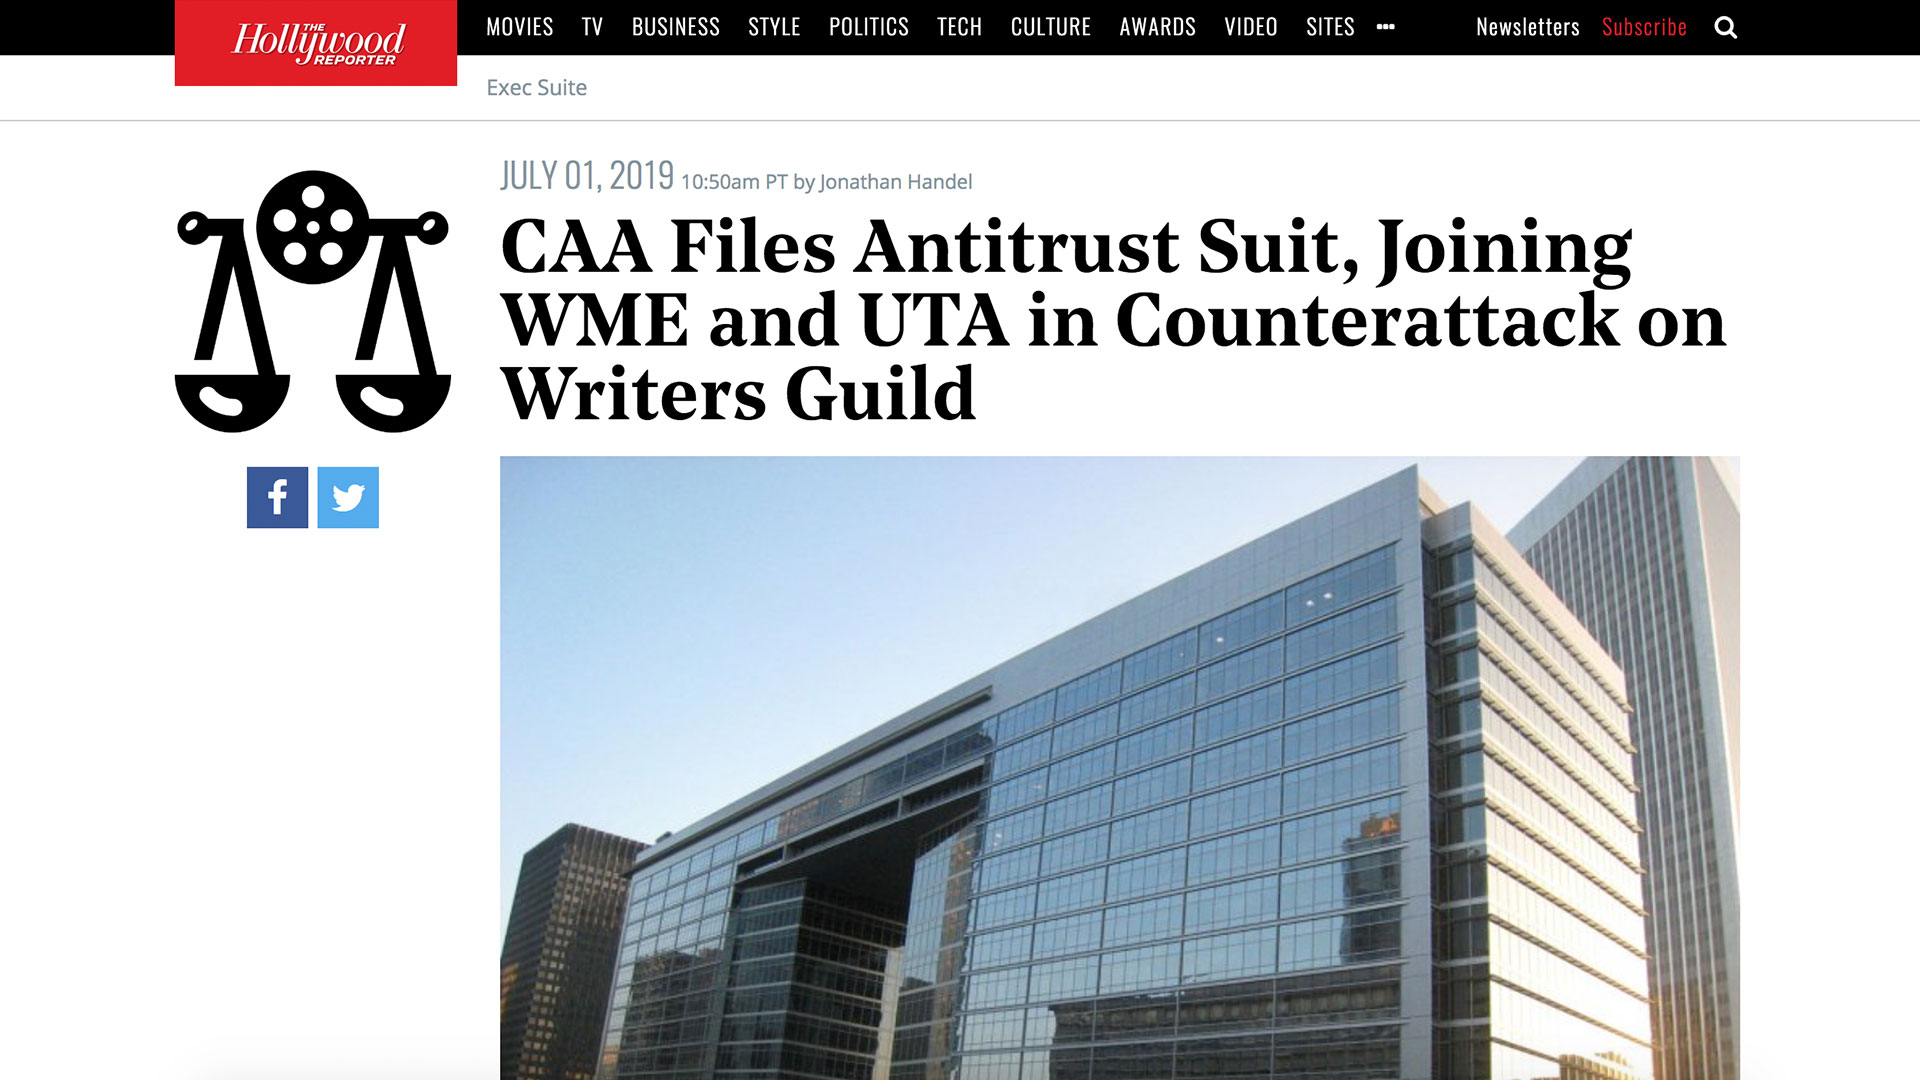 Fairness Rocks News CAA Files Antitrust Suit, Joining WME and UTA in Counterattack on Writers Guild